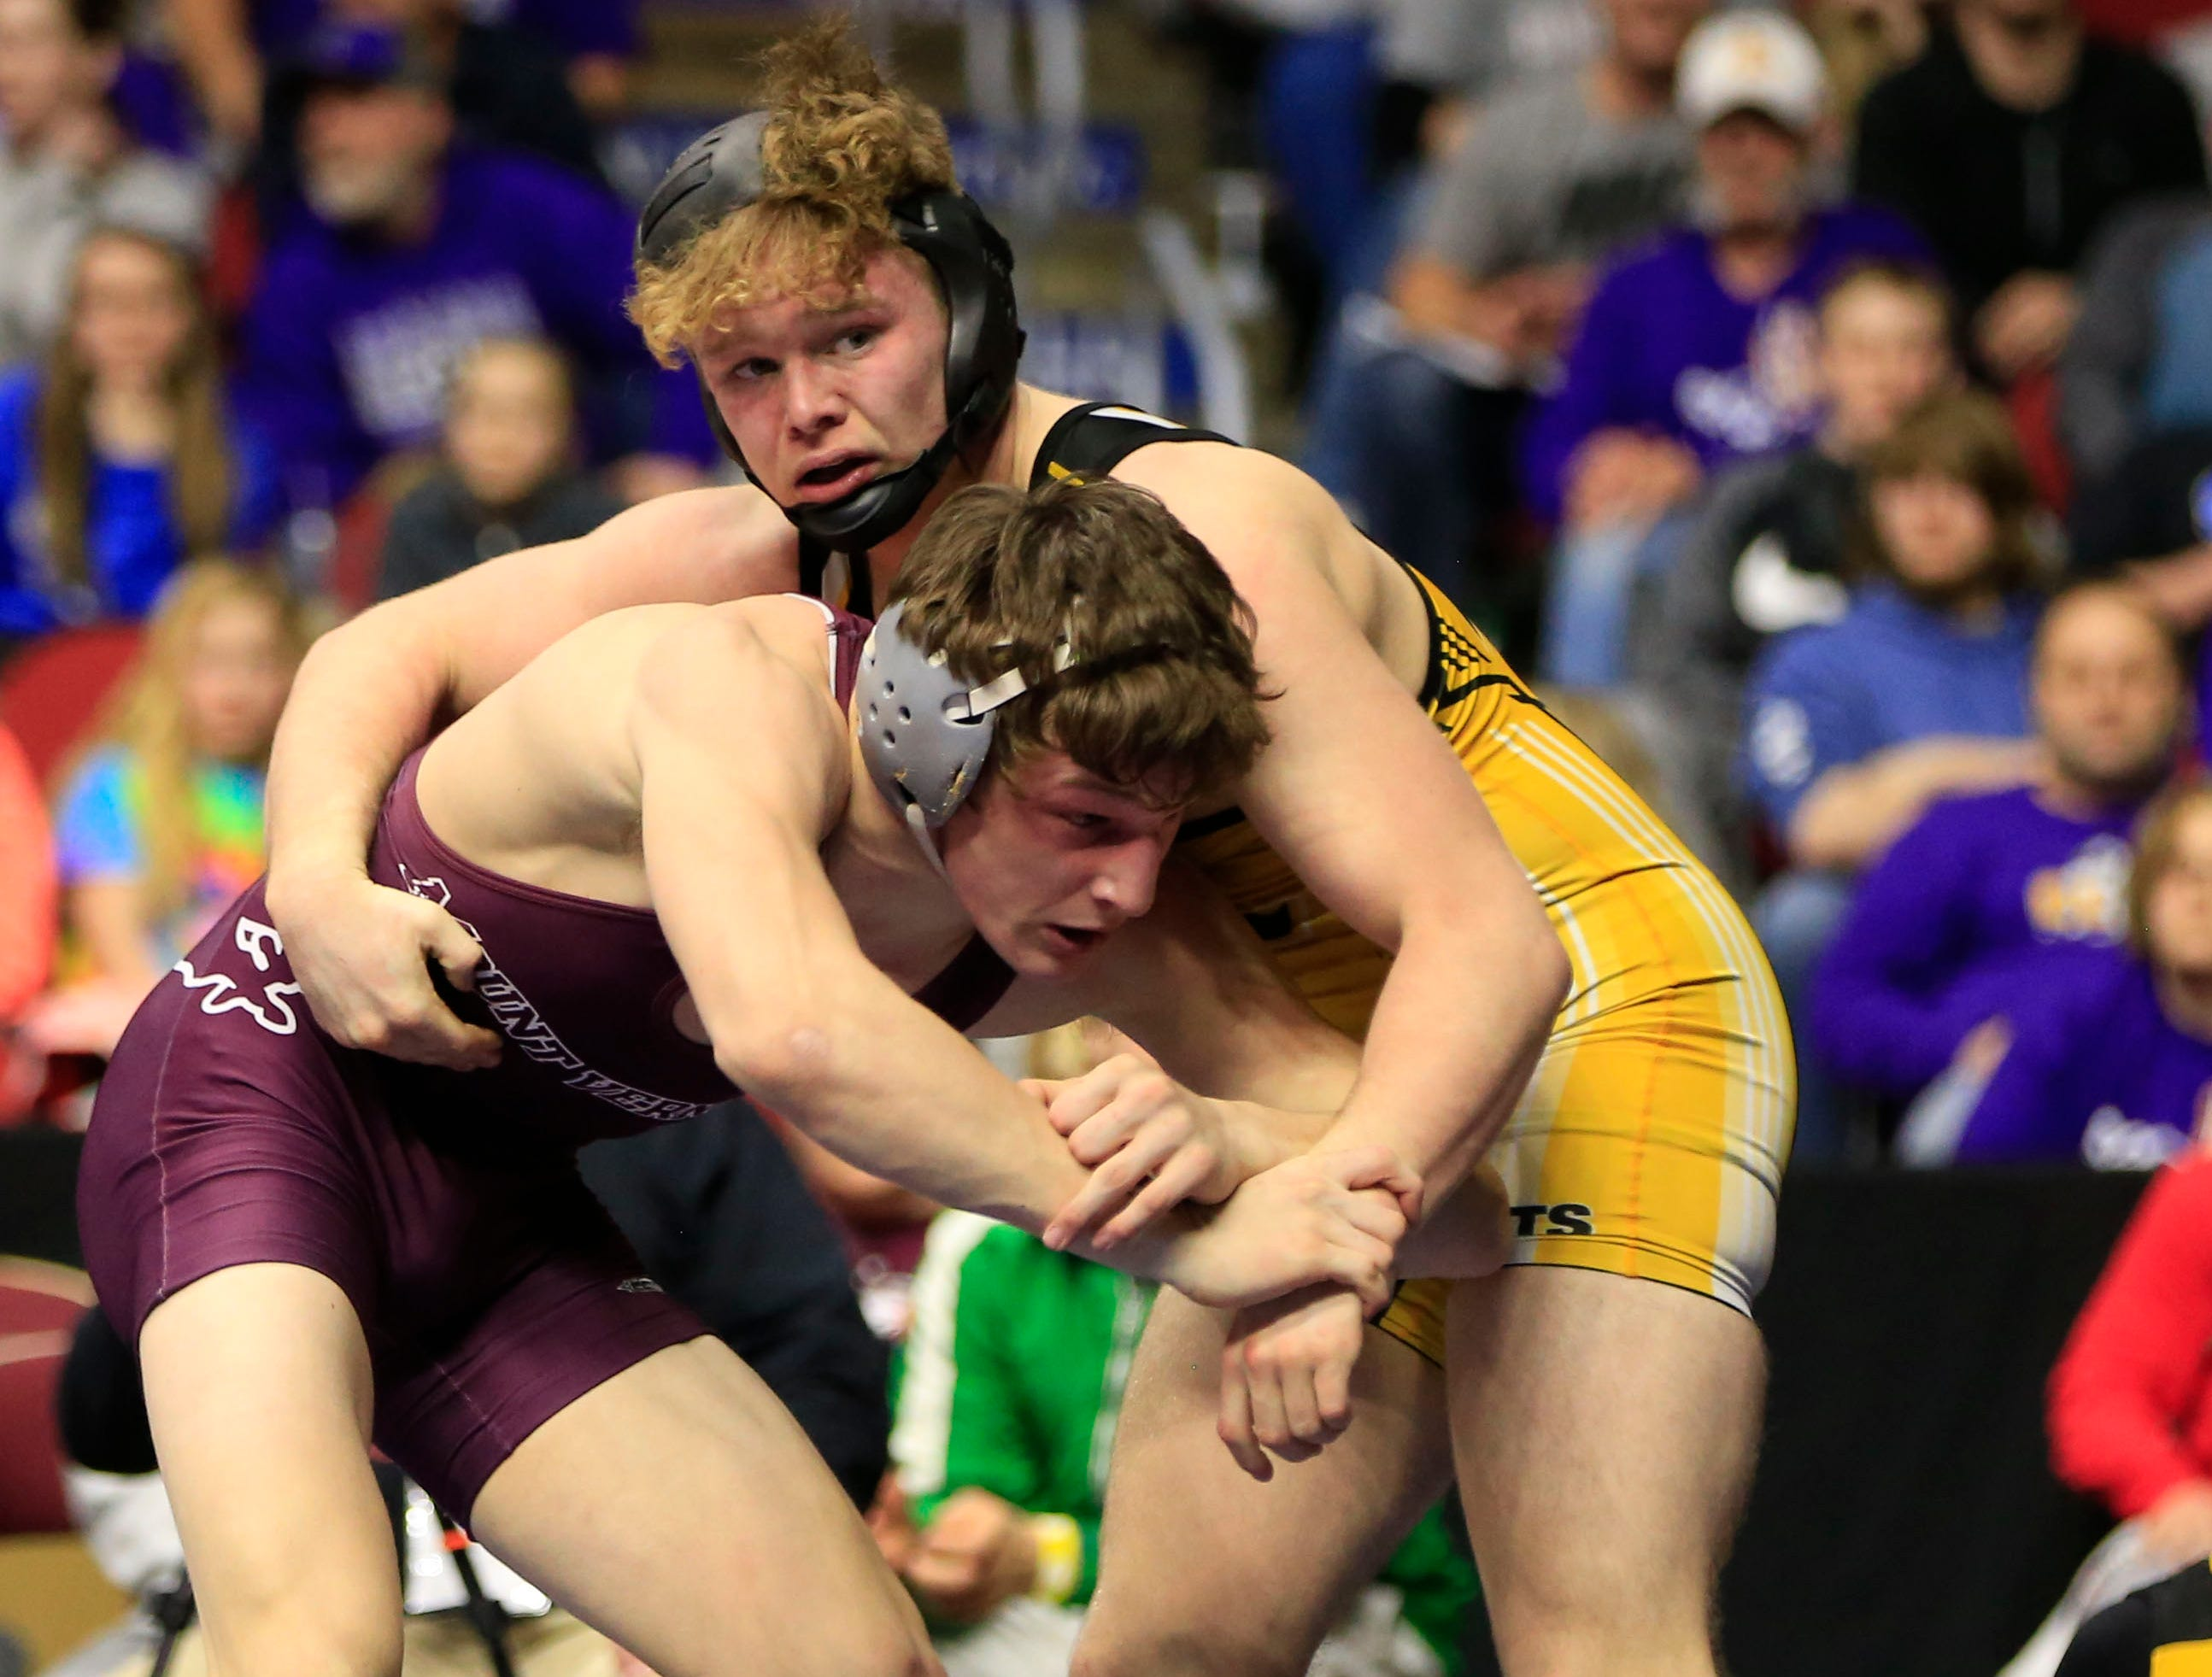 Paul Ryan of Mt. Vernon beats Sage Walker of Eddyville-Blakesburg-Fremont for the 2A state wrestling championship at 170 pounds Saturday, Feb. 16, 2019.